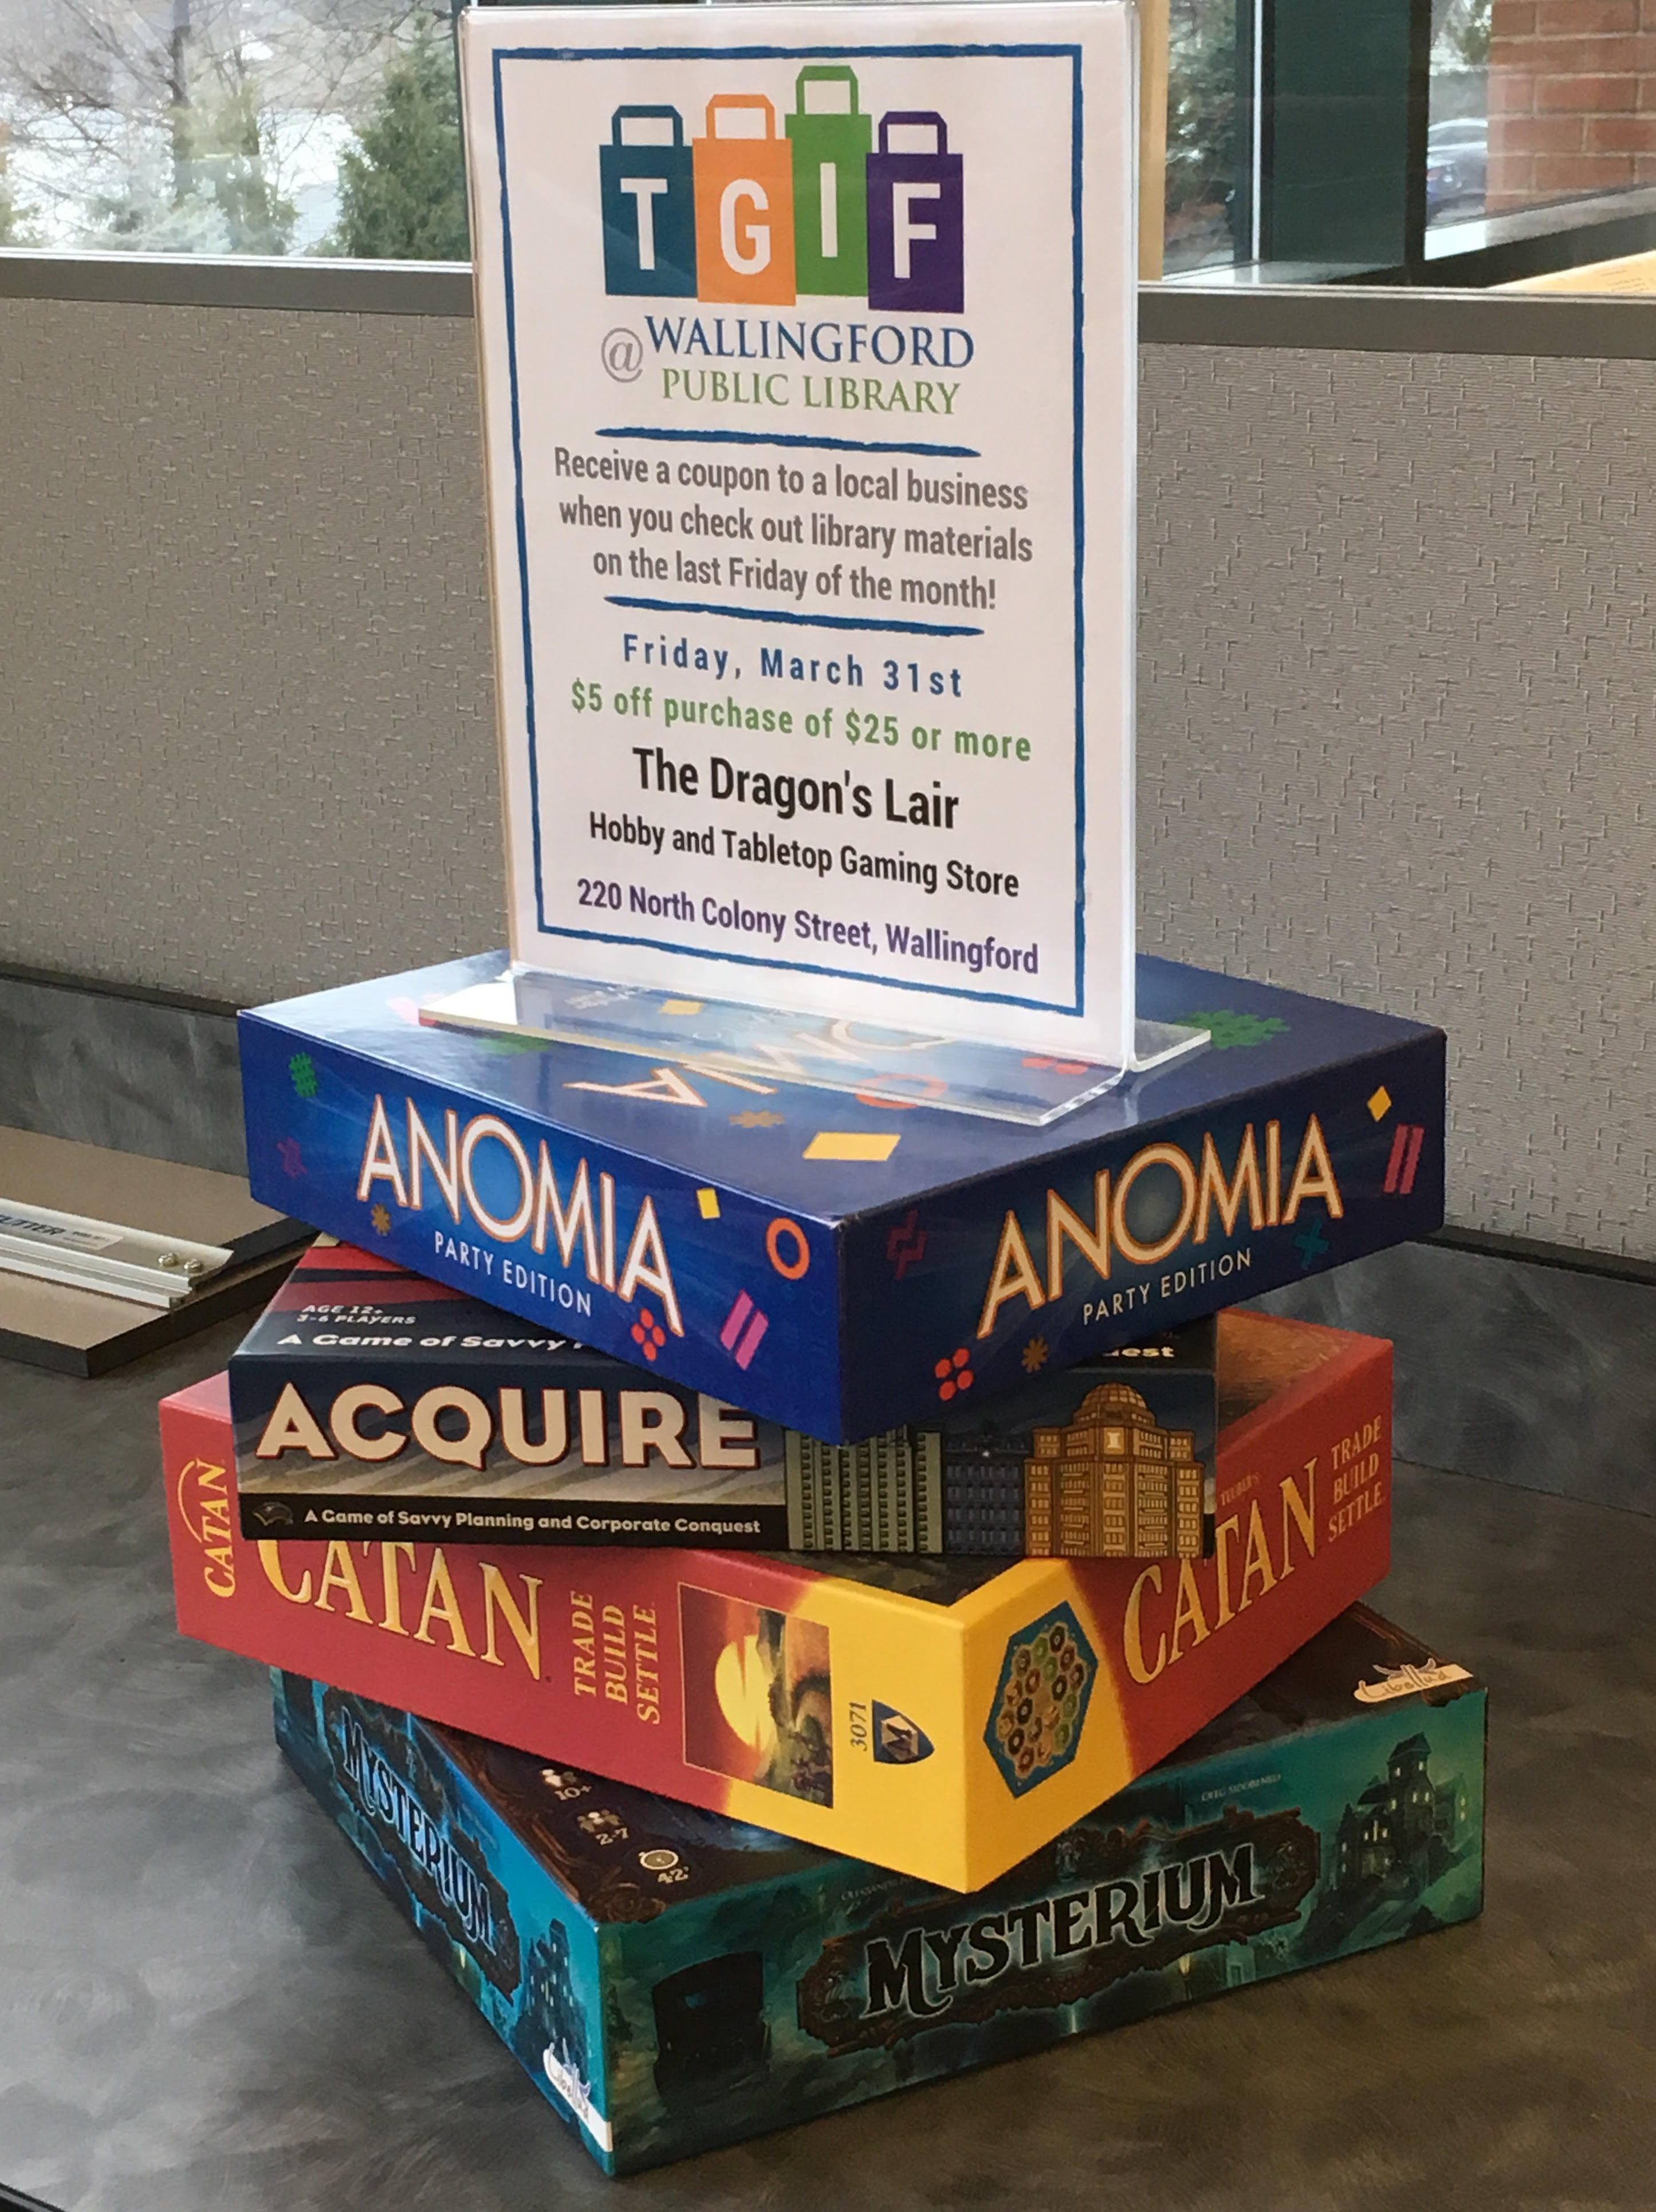 The Wallingford Public Library is offering coupons to local businesses on the last Friday of the month when patrons check out library items. On March 31, the gaming shop Dragon